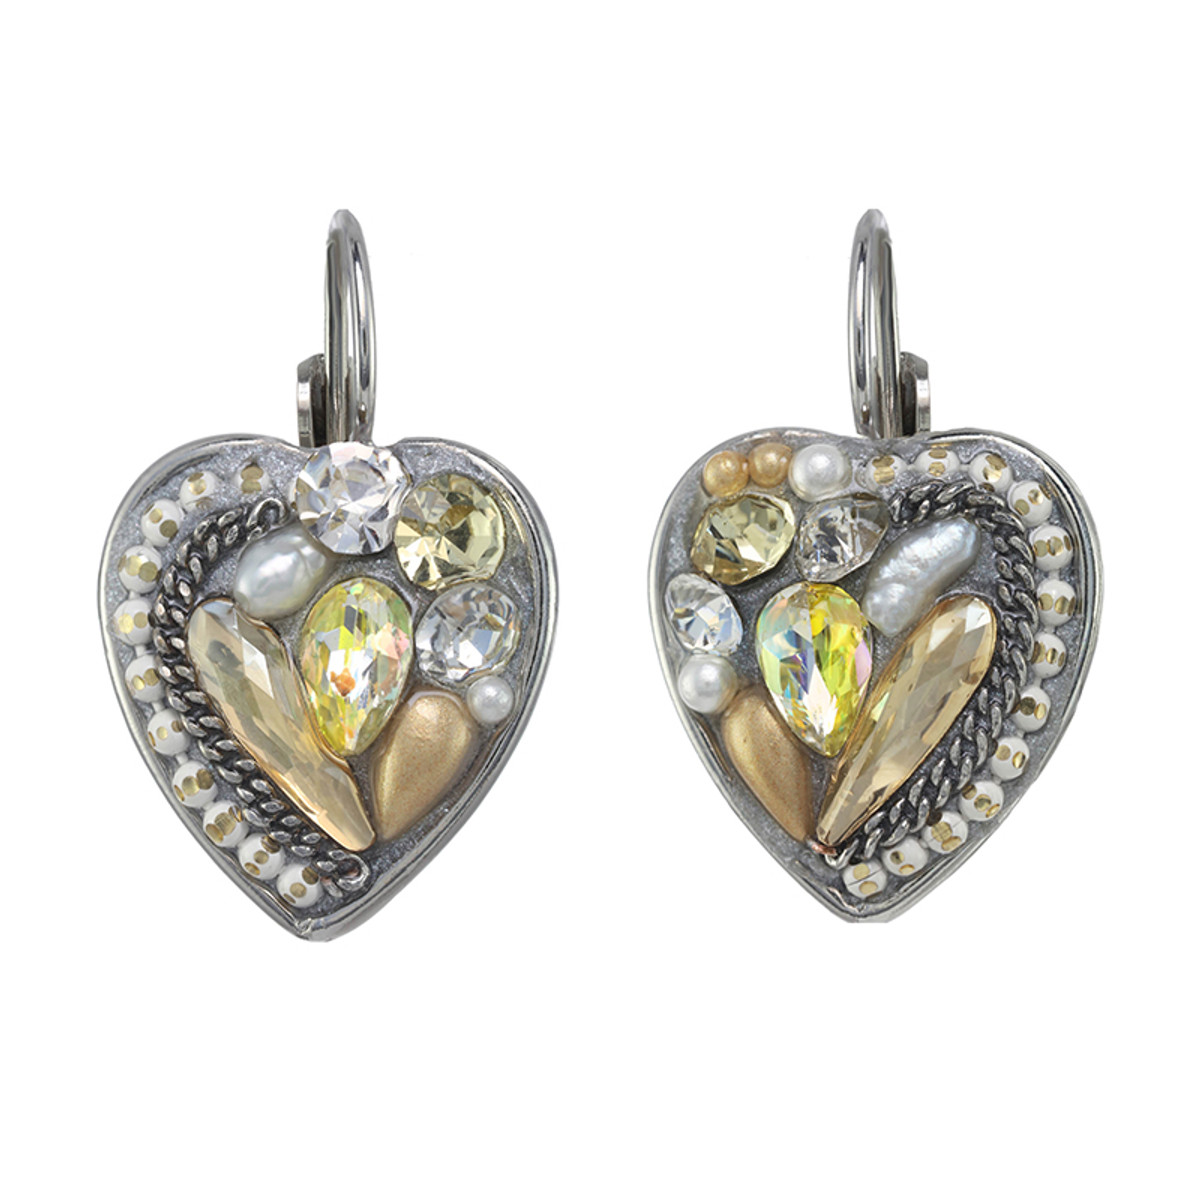 Michal Golan Moonlight Heart Earrings